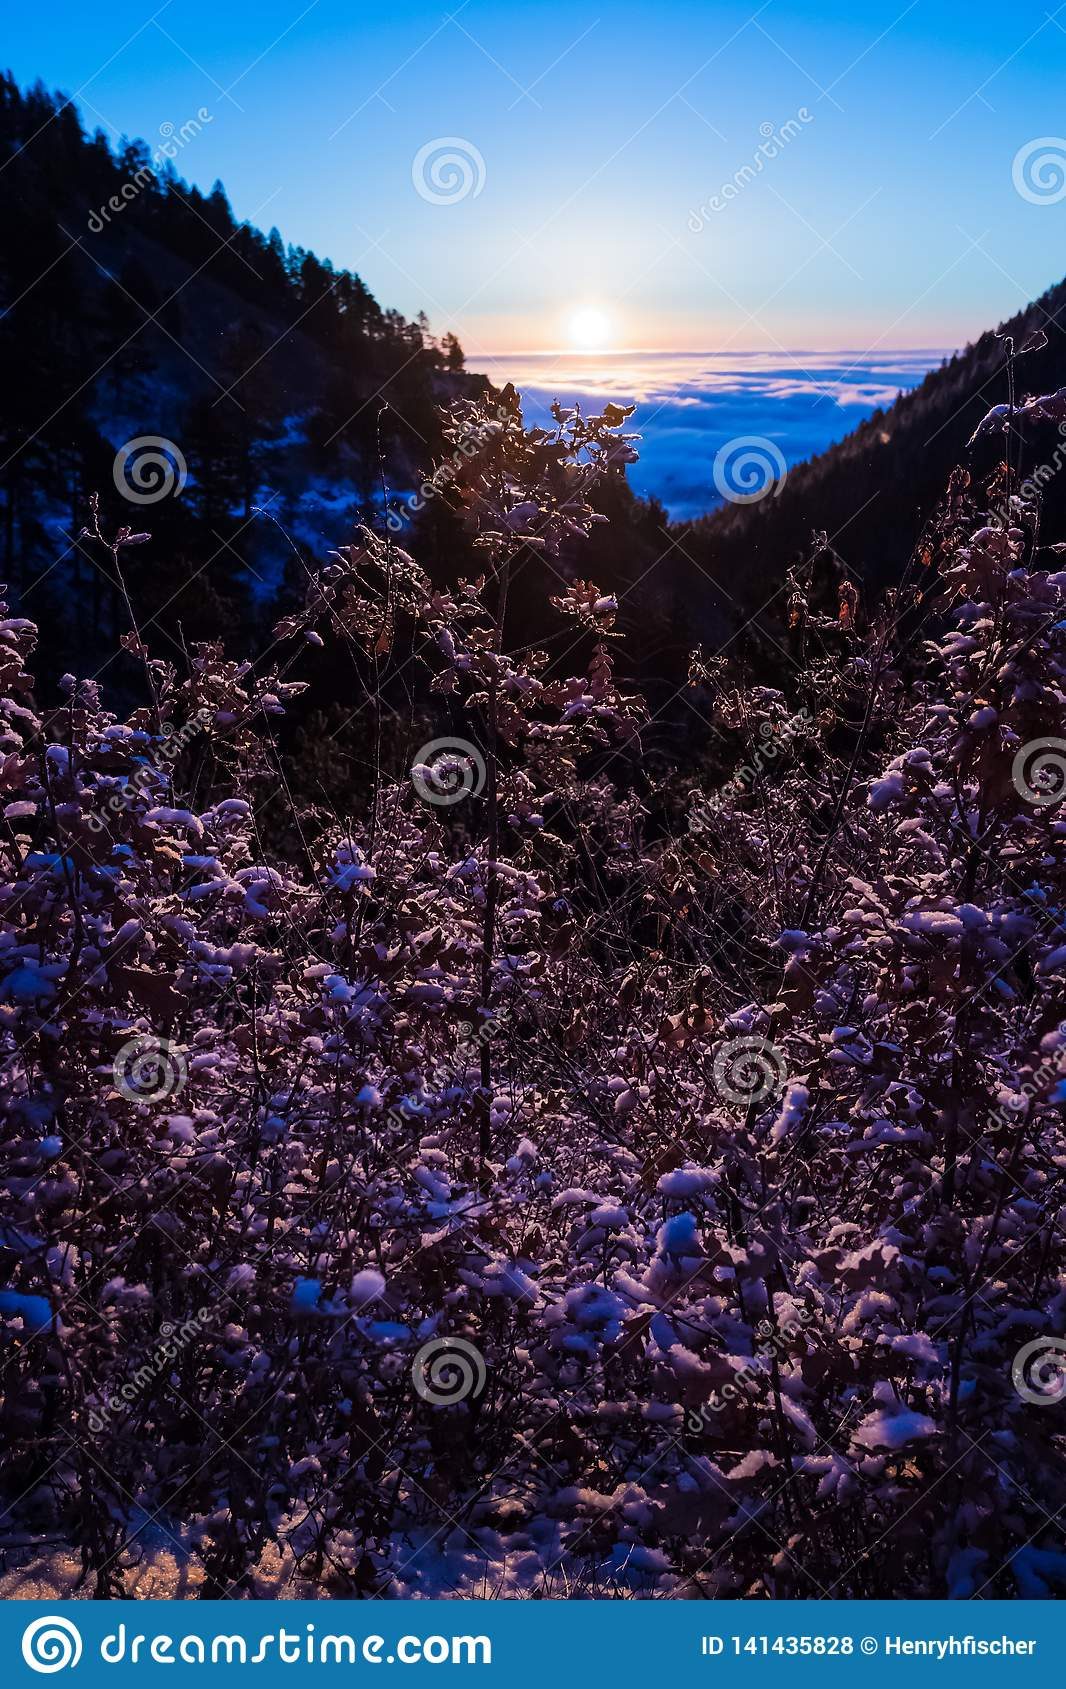 Lavender atop a Mountain at Sunrise